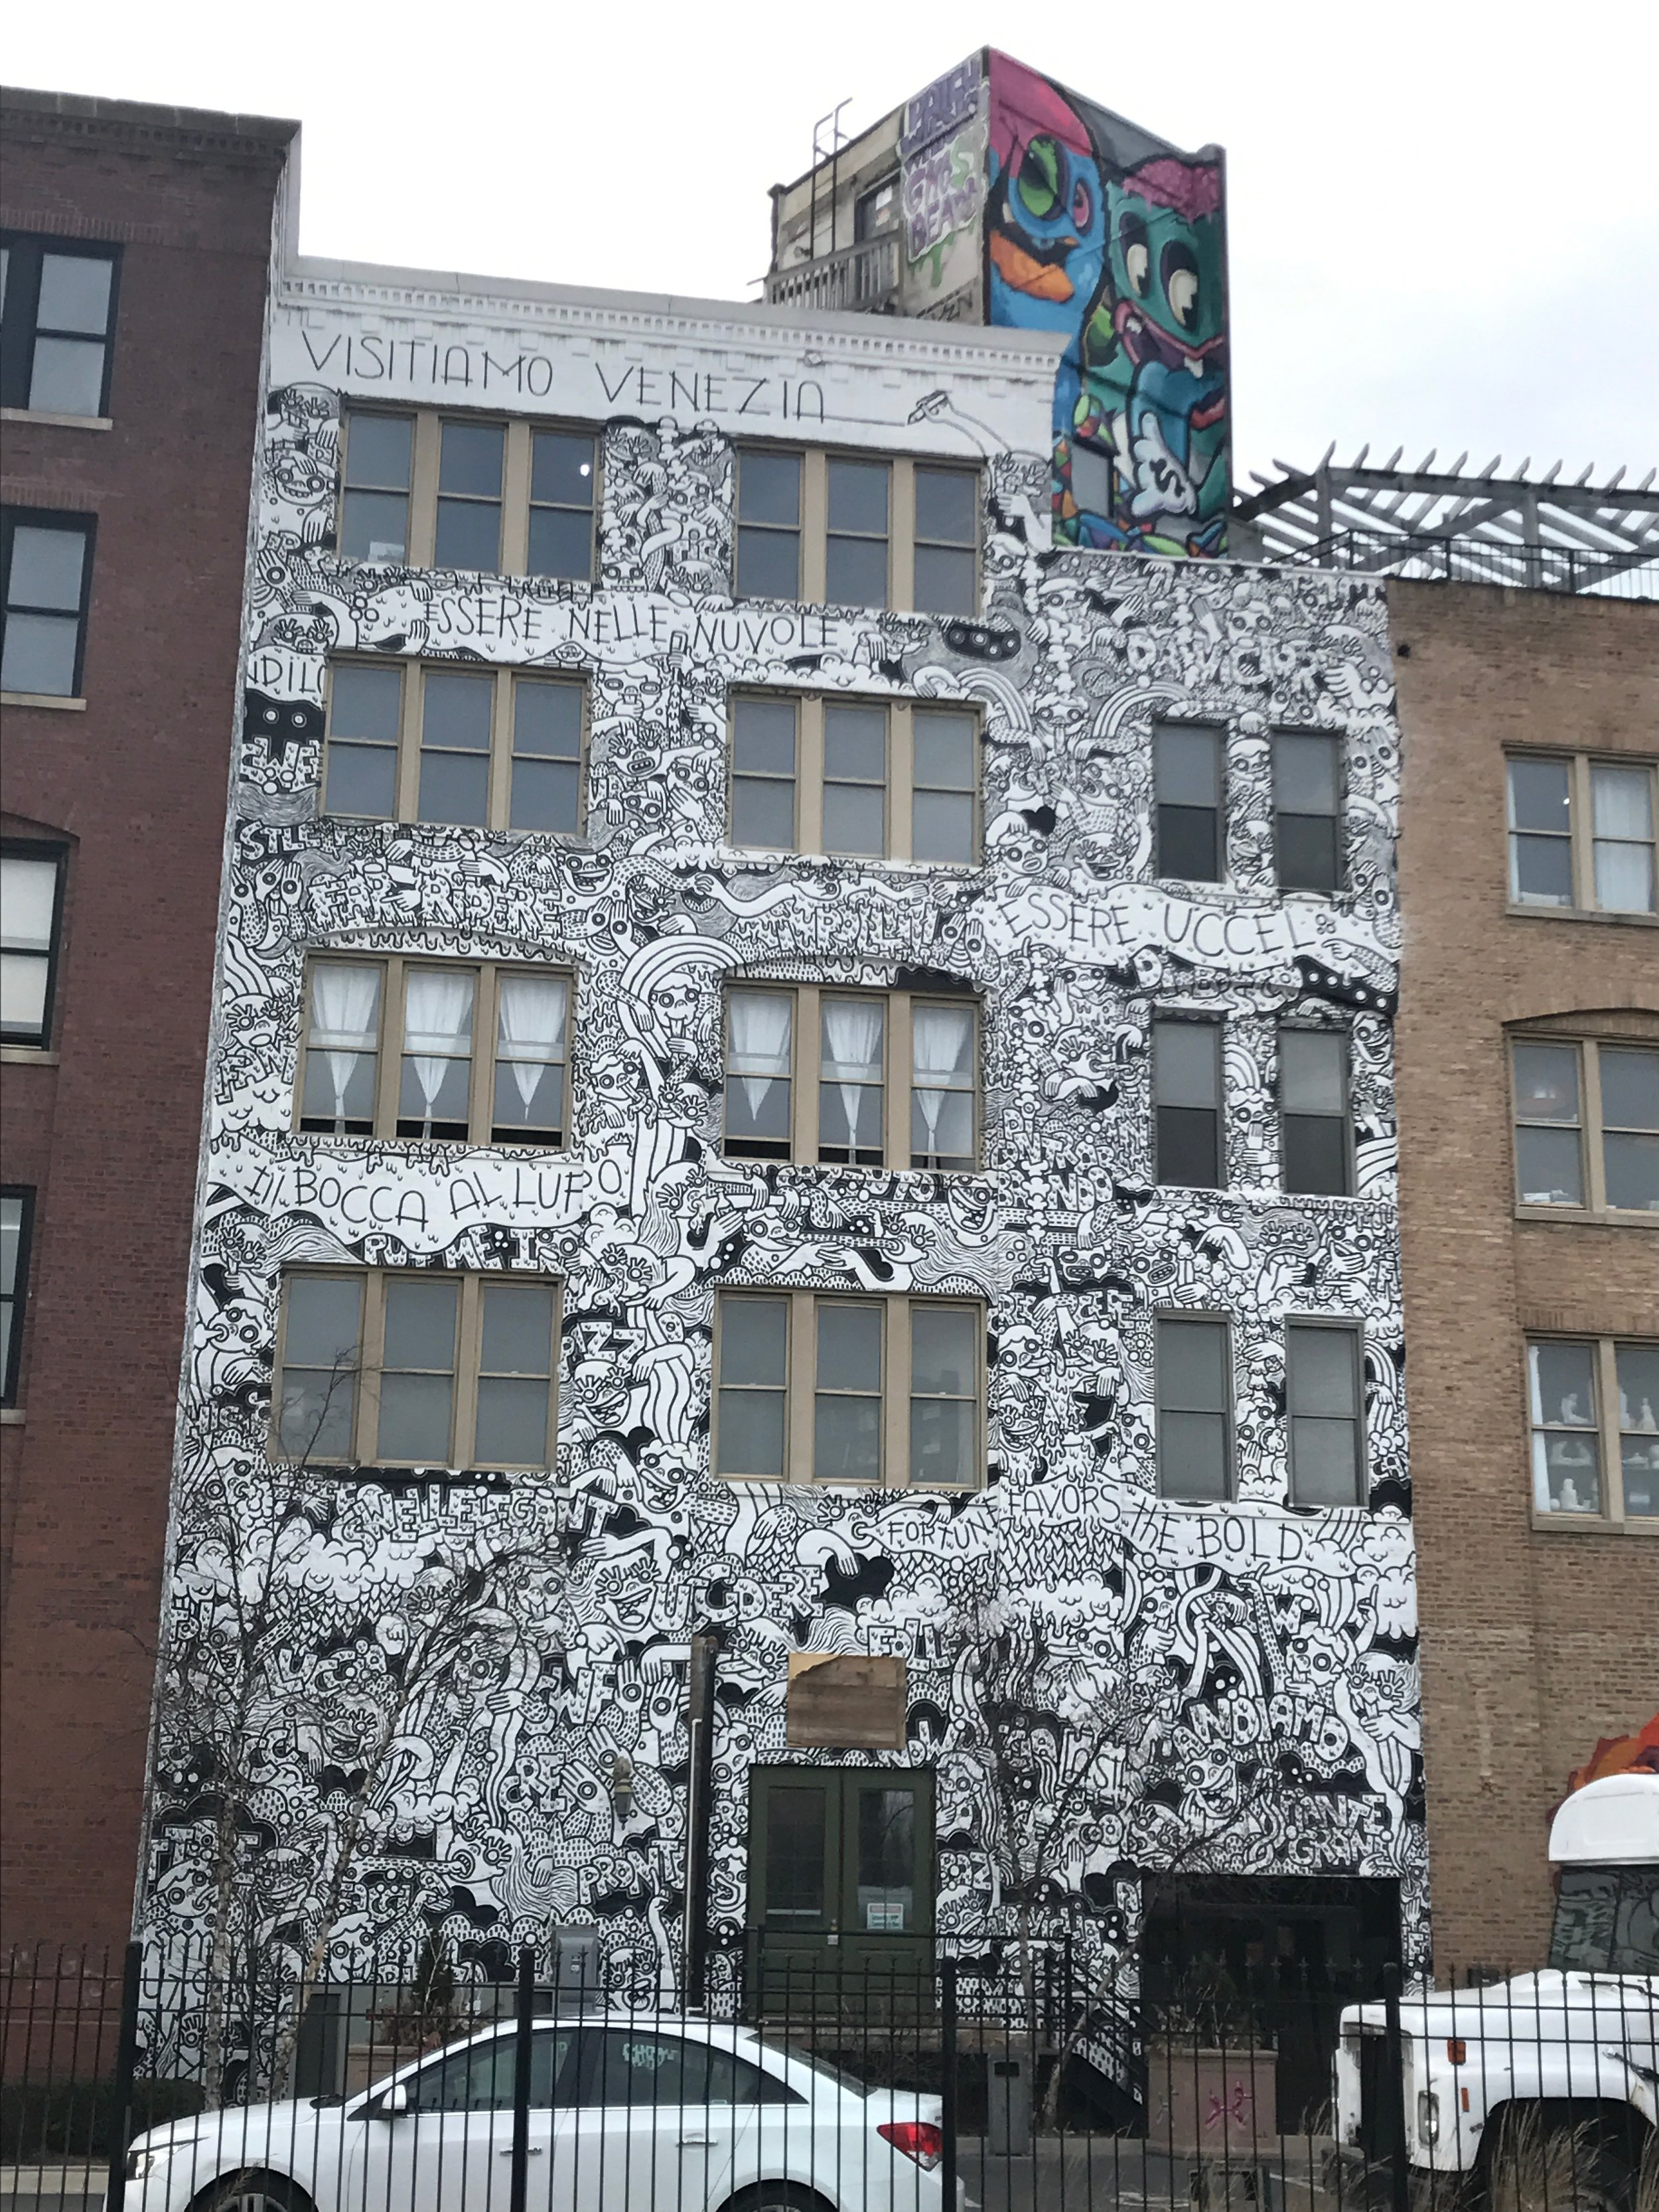 Driving up, we knew we were in the right place when we saw this wall. The artist lived in the building while she painted the whole thing - freehand- over several weeks.